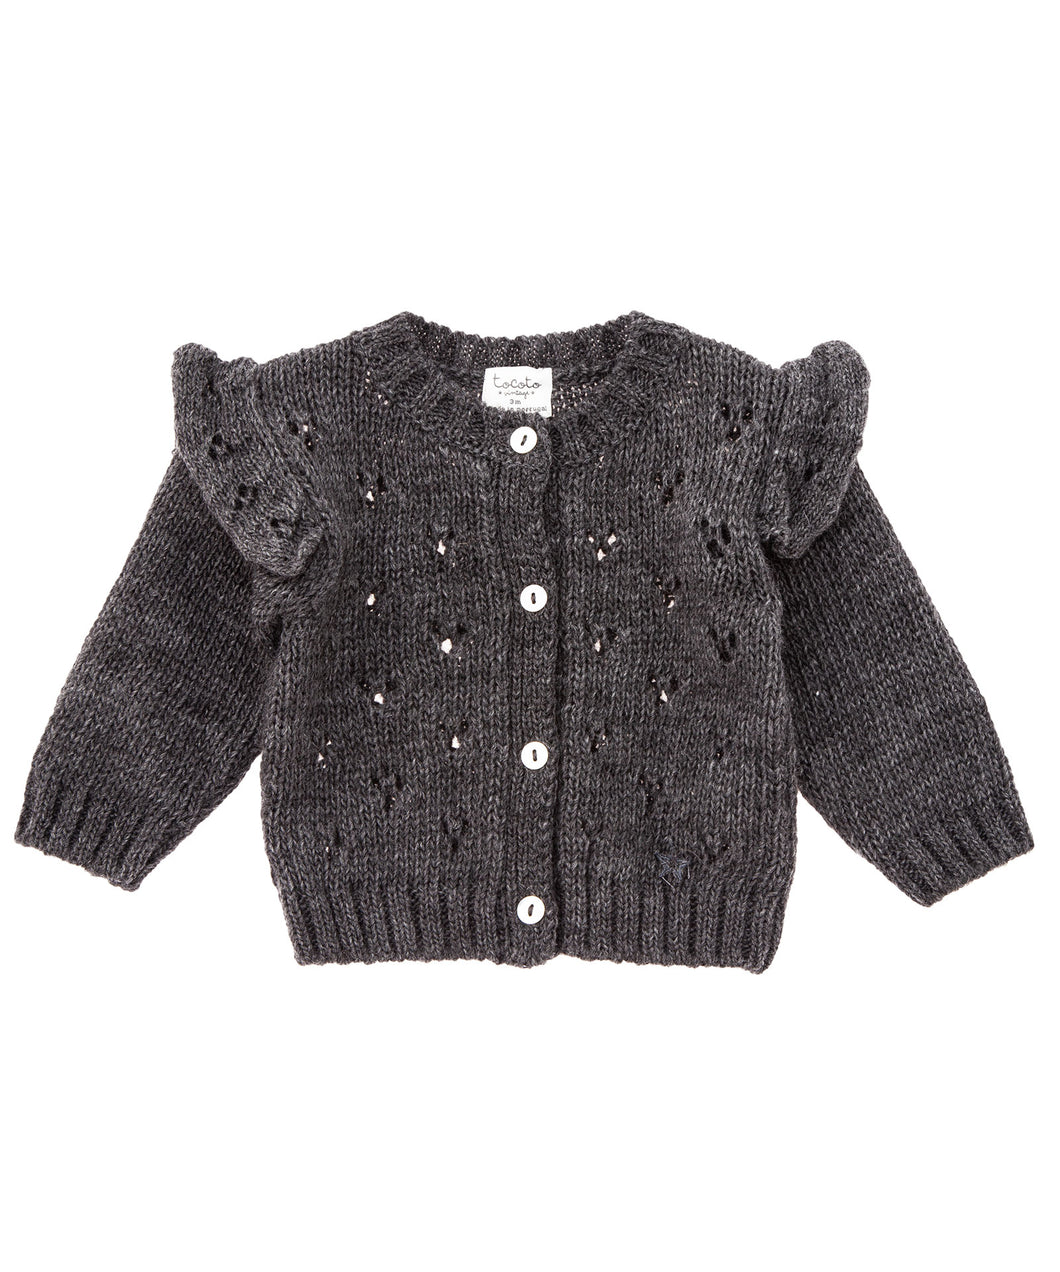 Tocoto Vintage - Openwork knitted grey cardigan